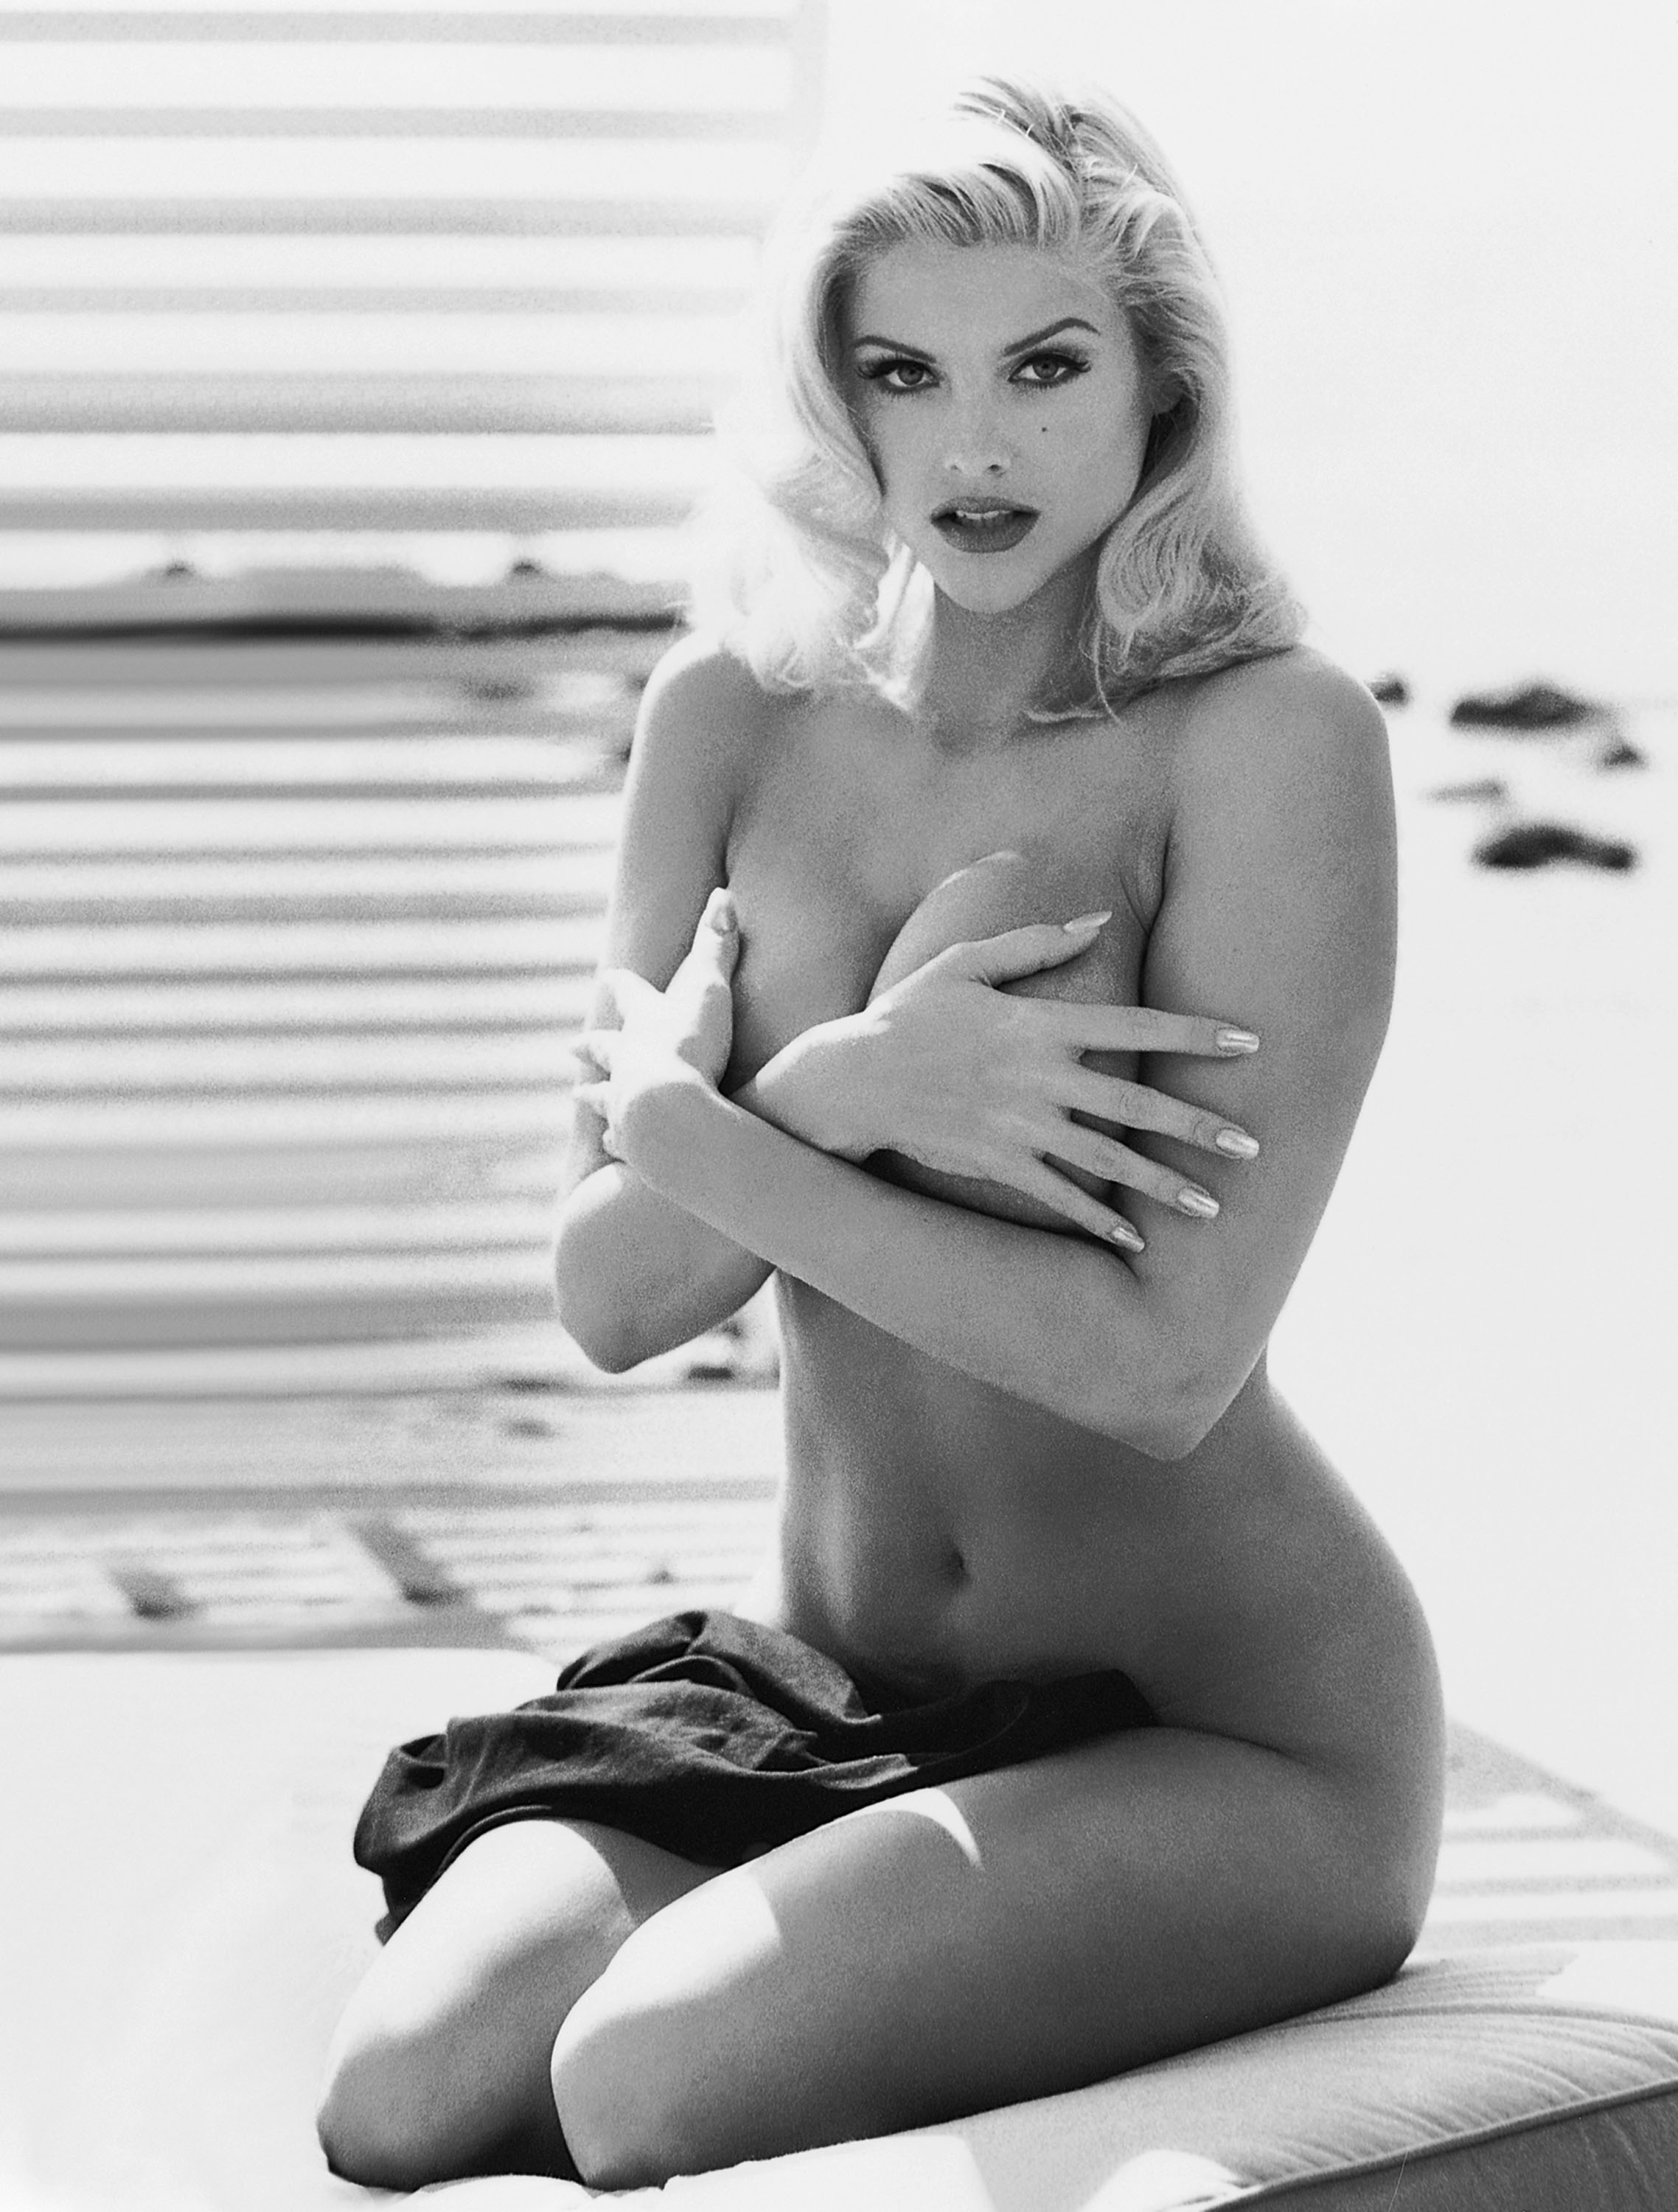 Hanah goddess. anna nicole smith nude free down loads the best!!